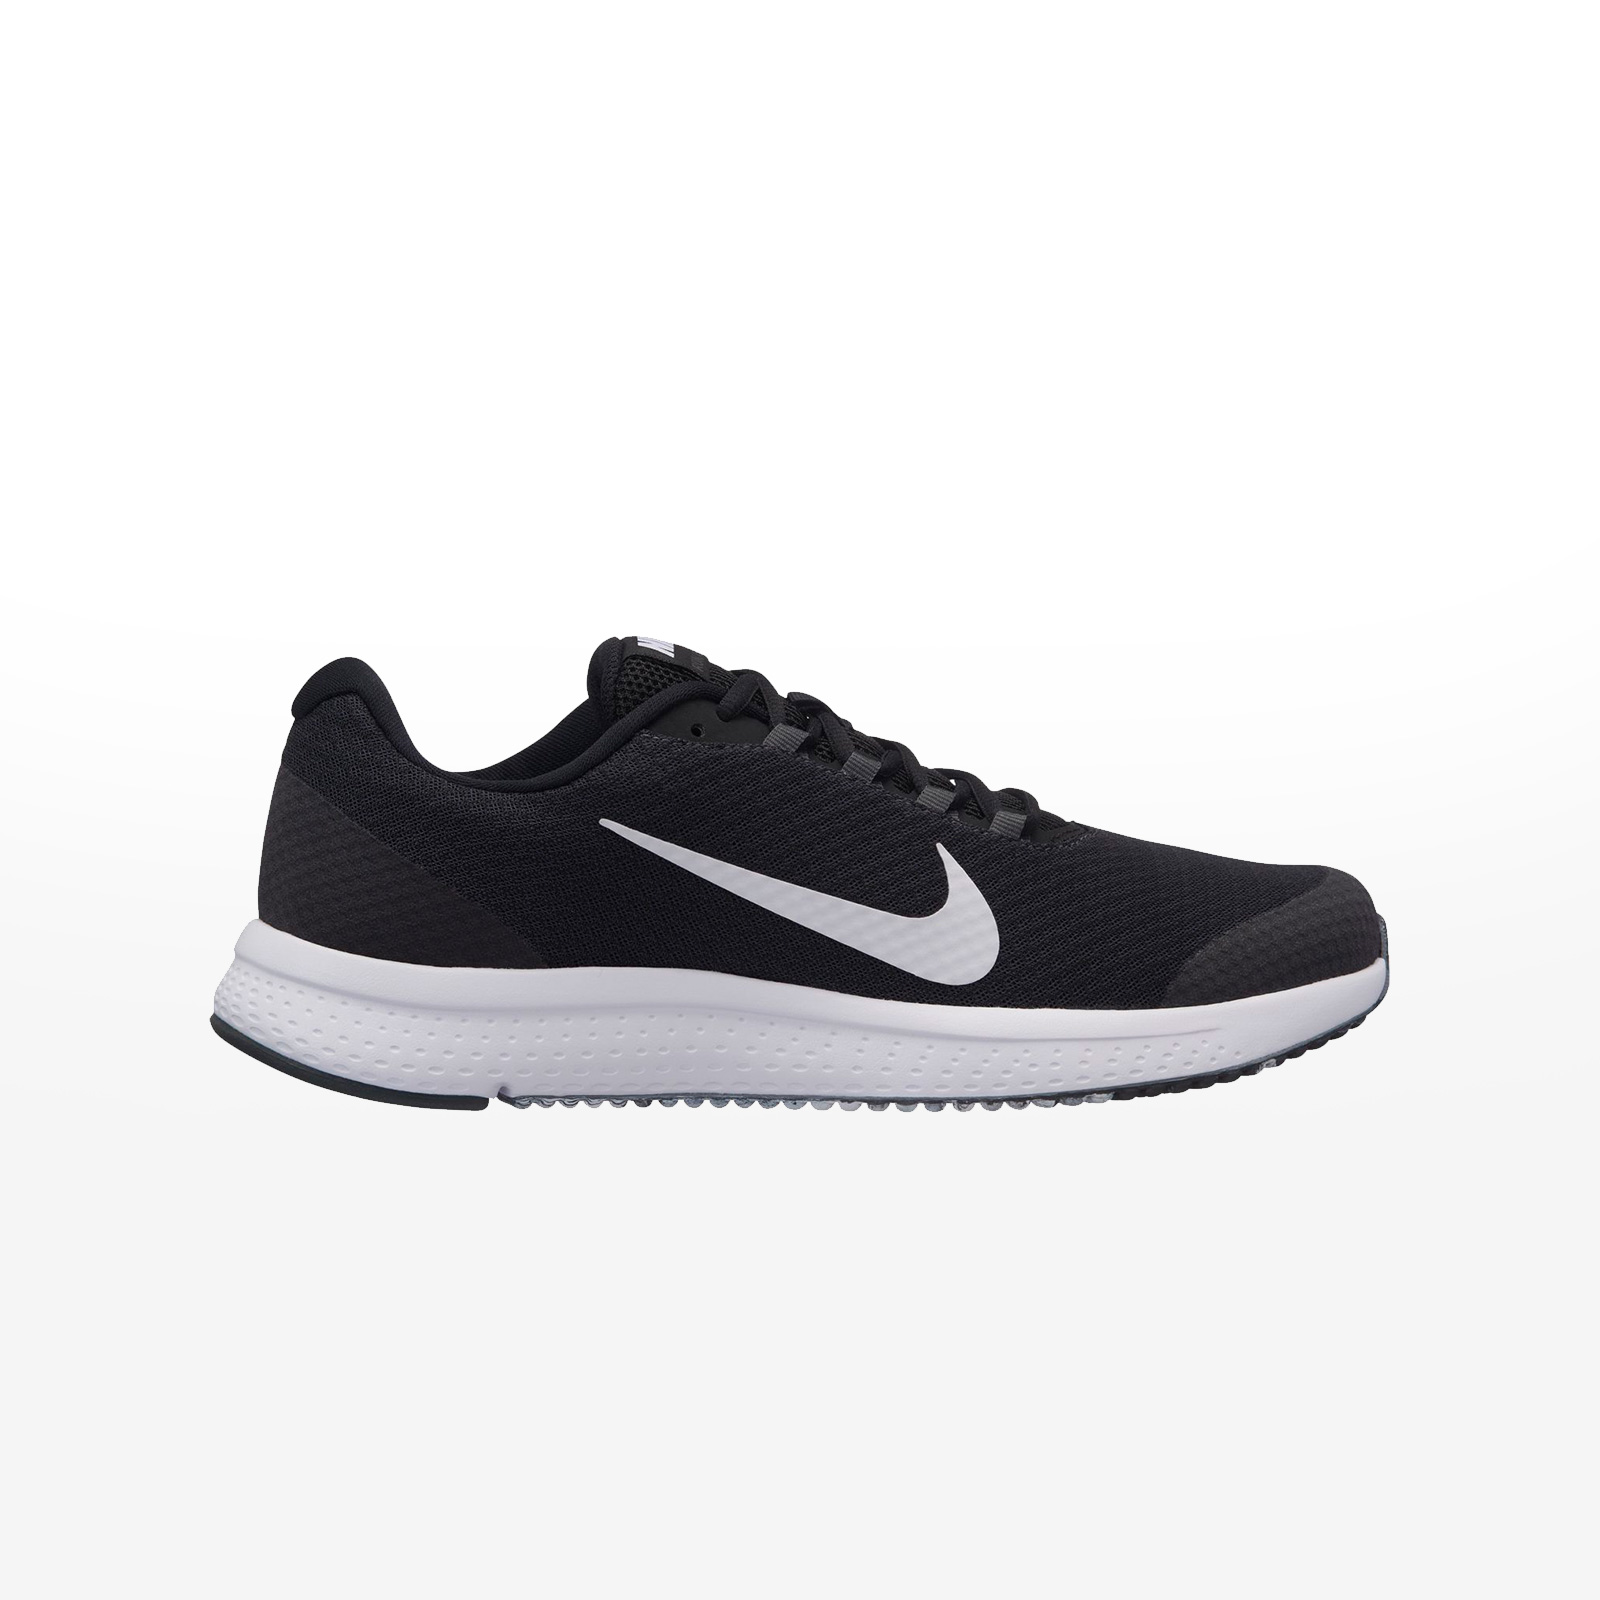 547a79cfa92 Sportcafe Nike – NIKE RUNALLDAY – BLACK/WHITE-ANTHRACITE